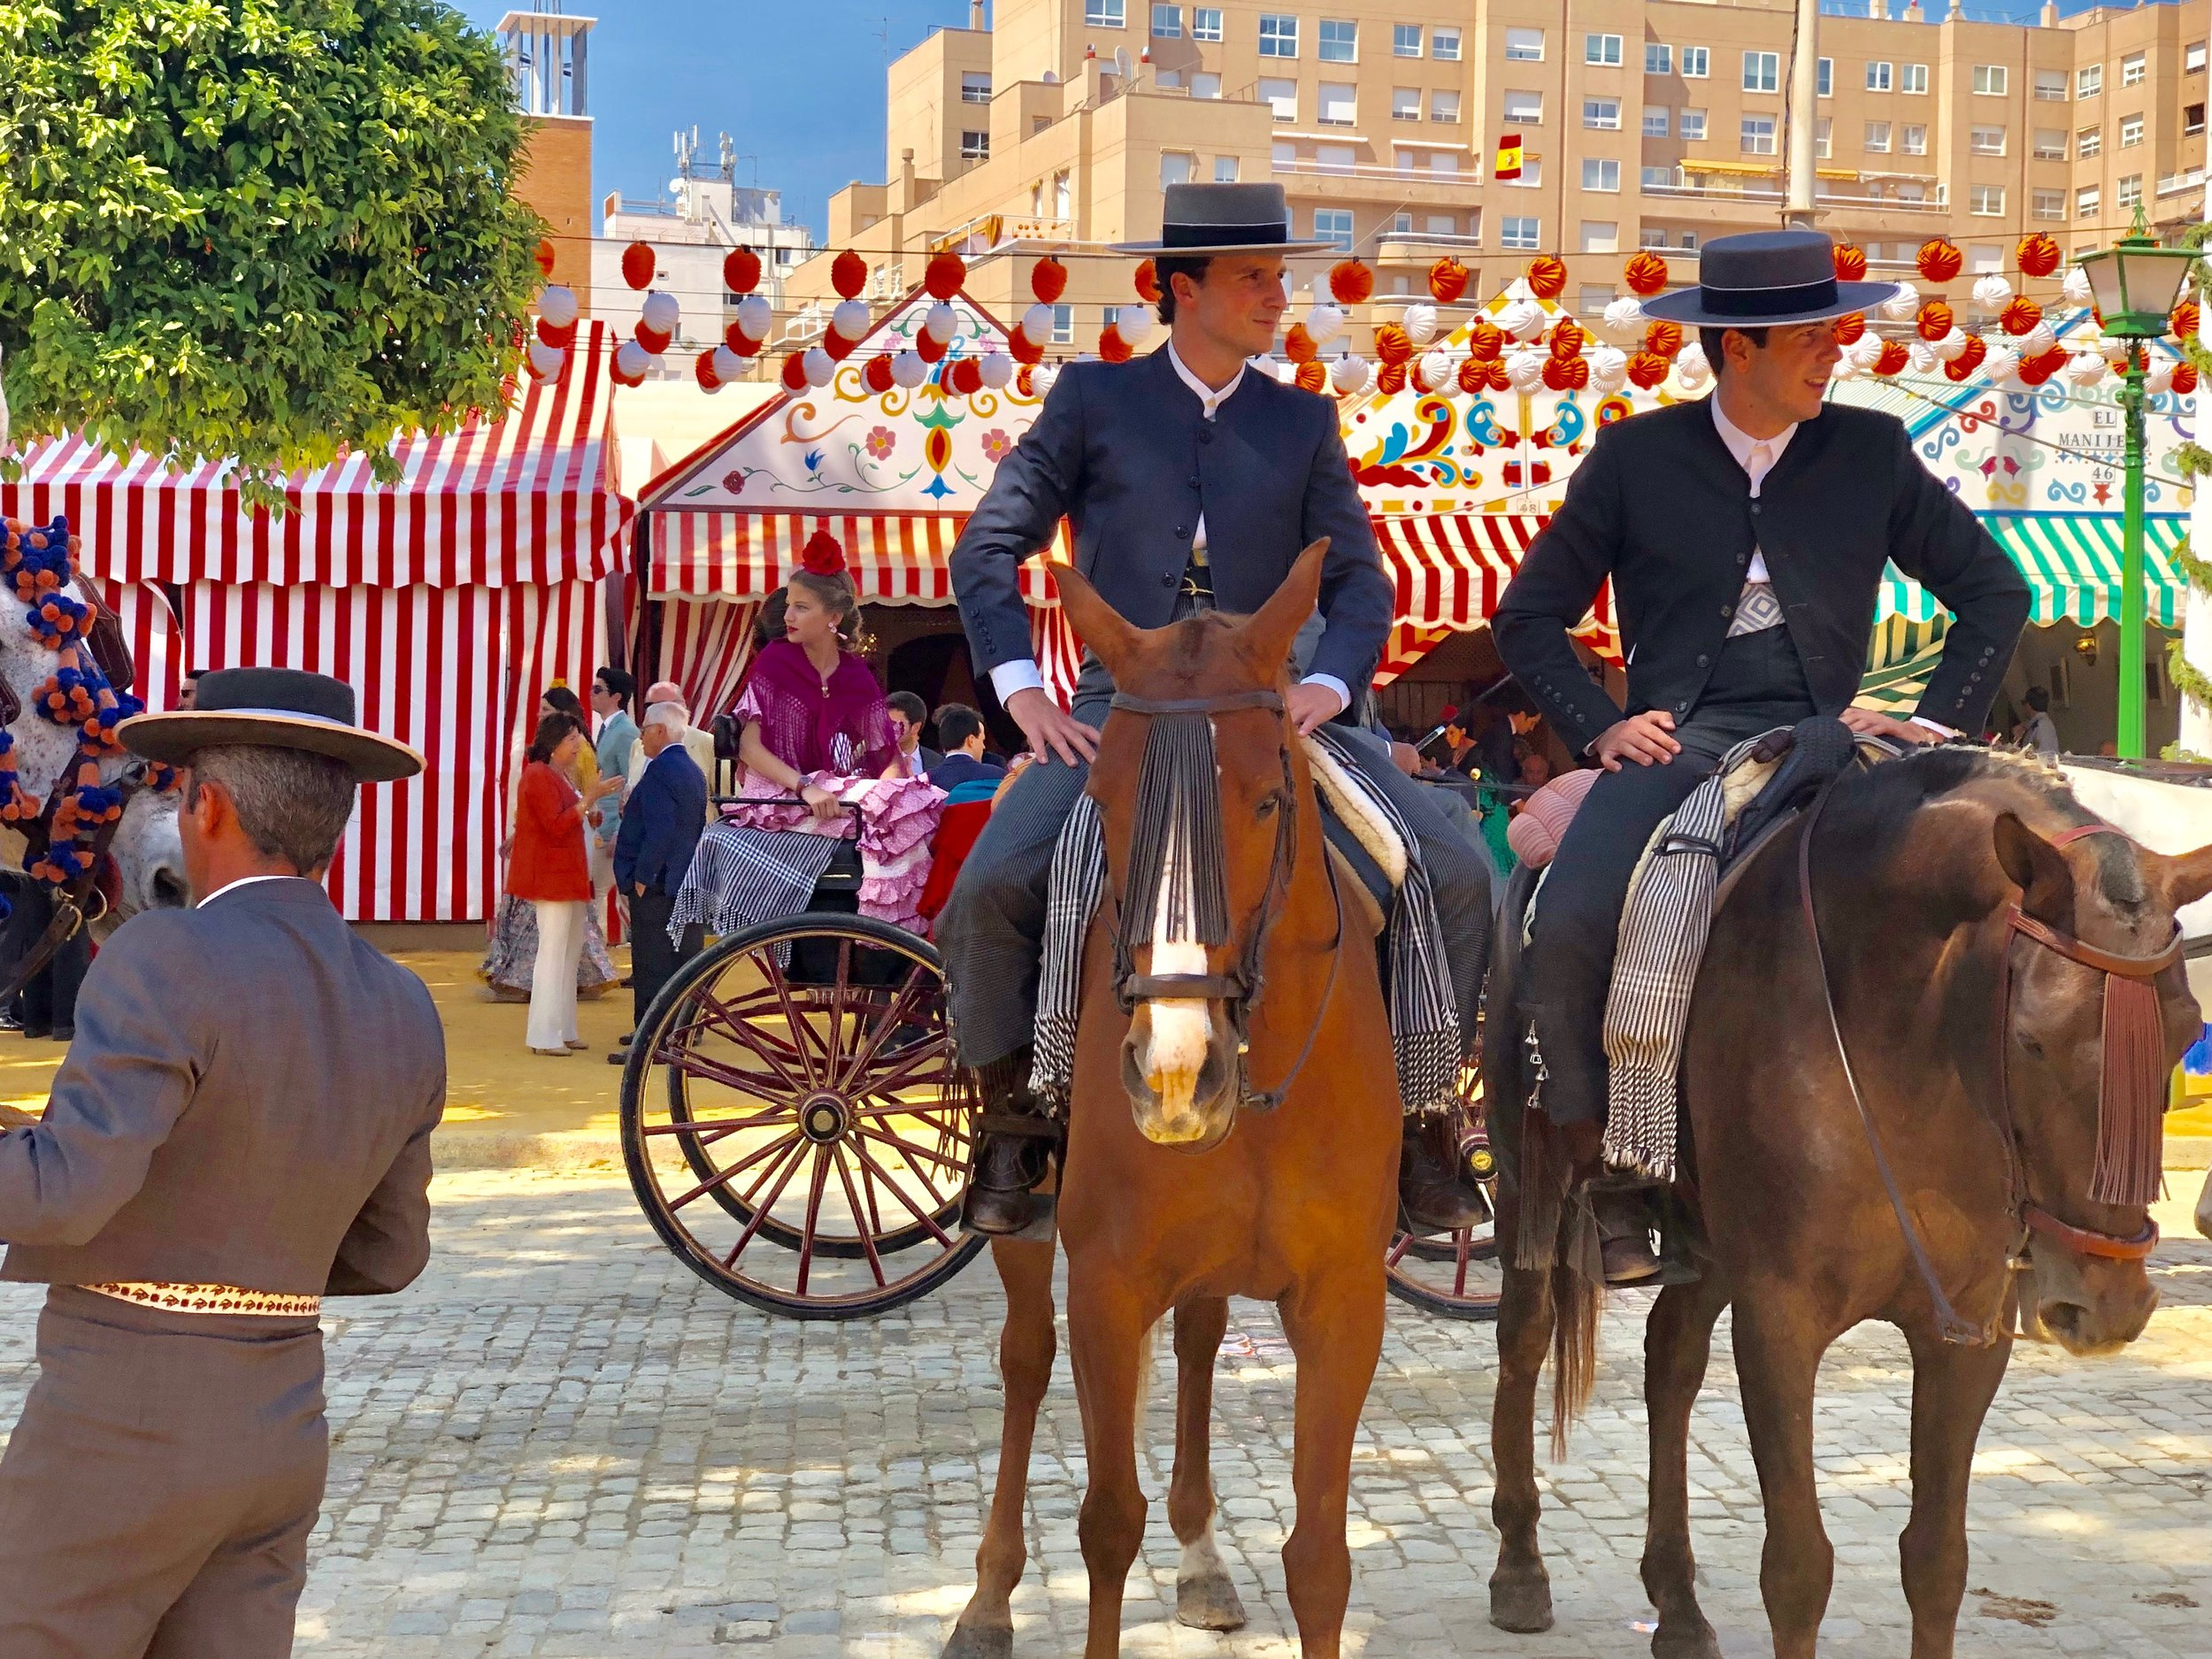 And the men who ride around in horses get to wear the sharp looking Cordobés hats and suits.